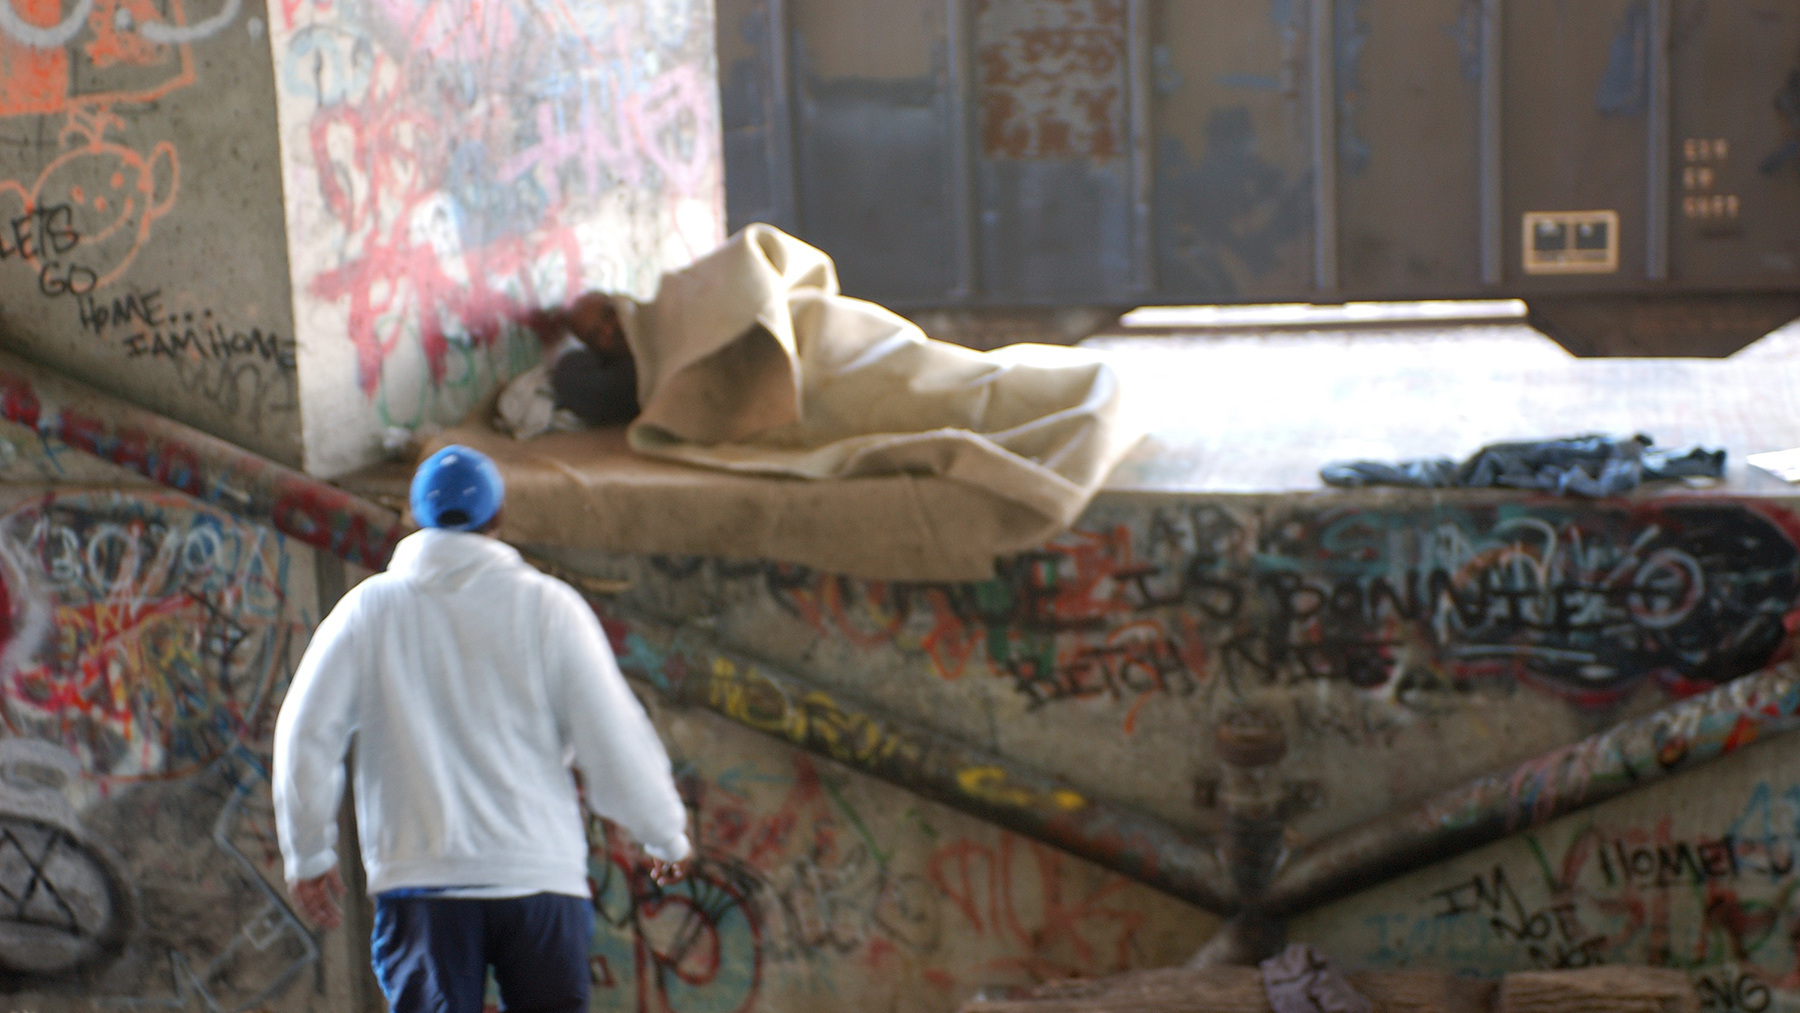 A health worker approaches a sleeping man. (Photo courtesy of NHCHC)